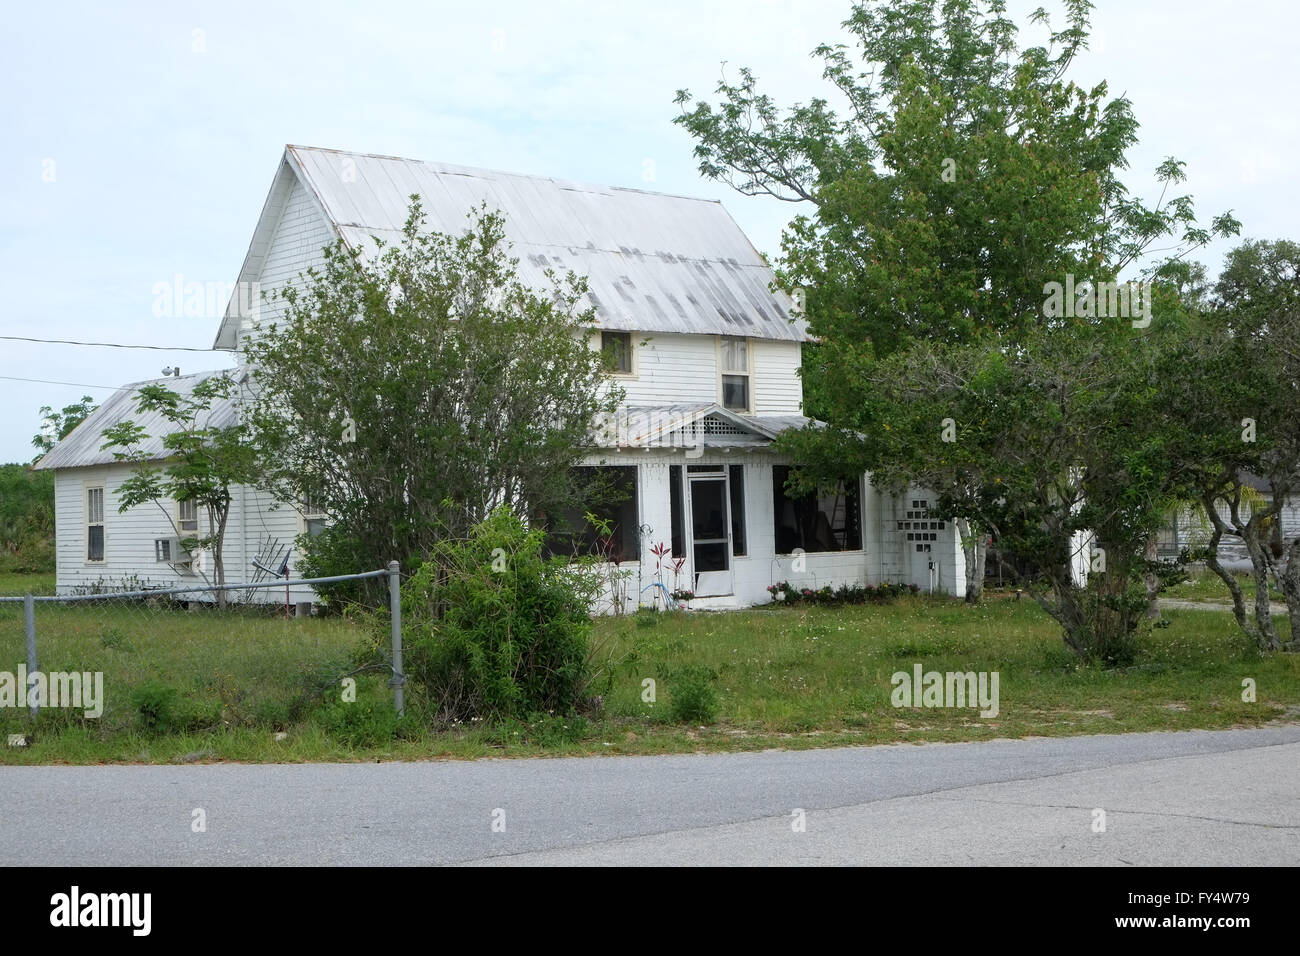 A typical house in Florida in a not so well off area, Loughman, Davenport, Florida,  April 2016 - Stock Image